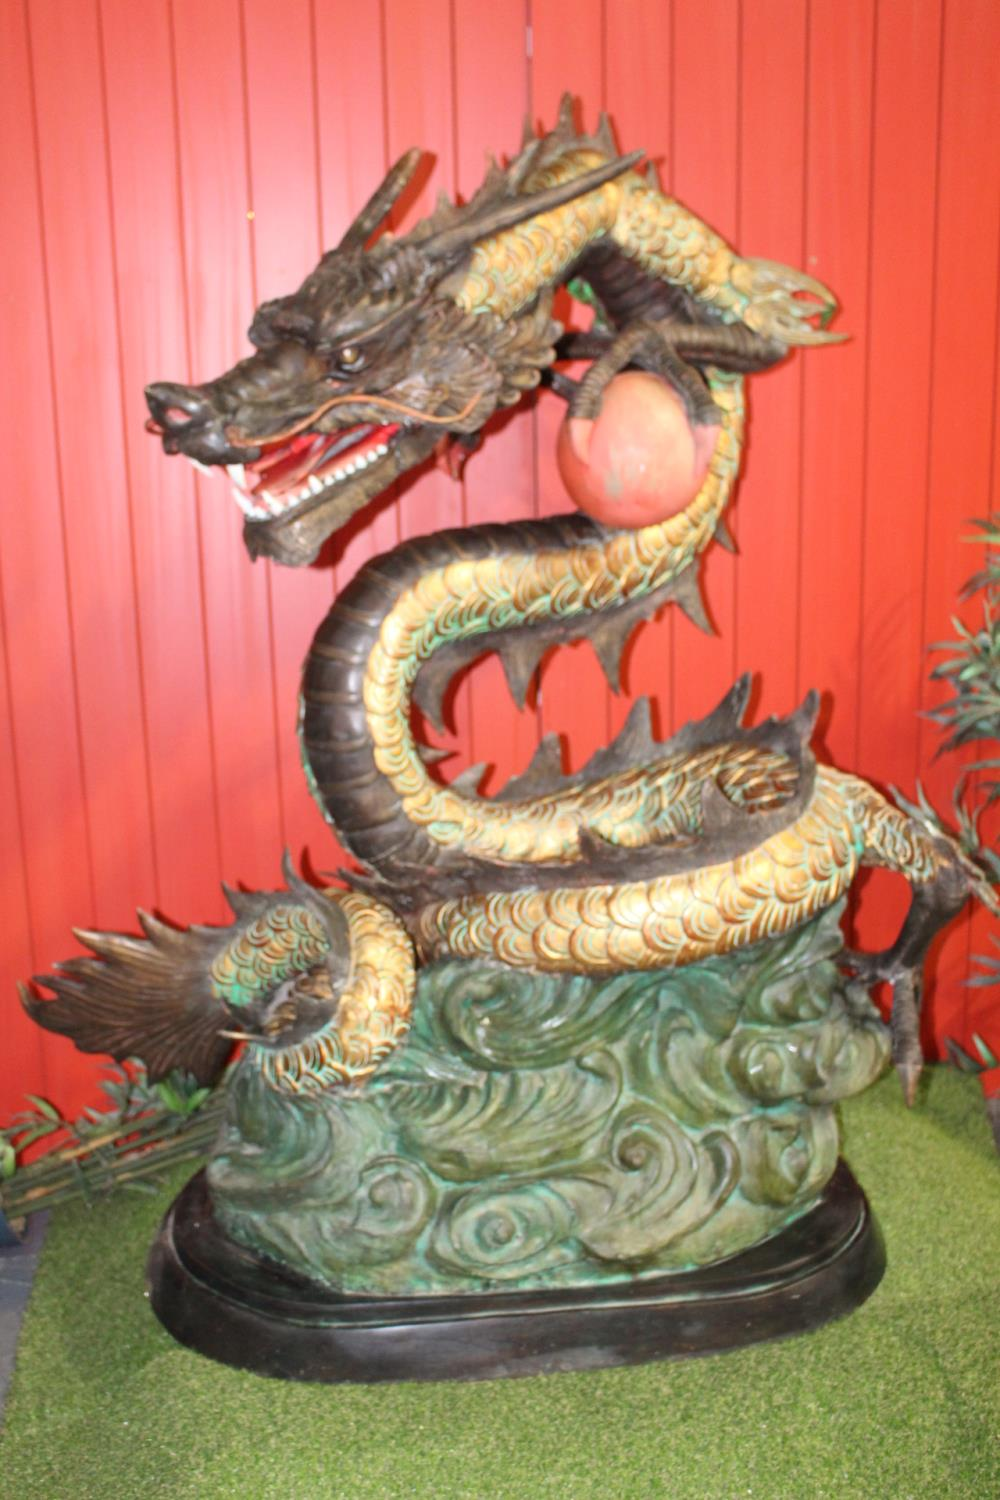 Model of a Dragon - Image 2 of 8